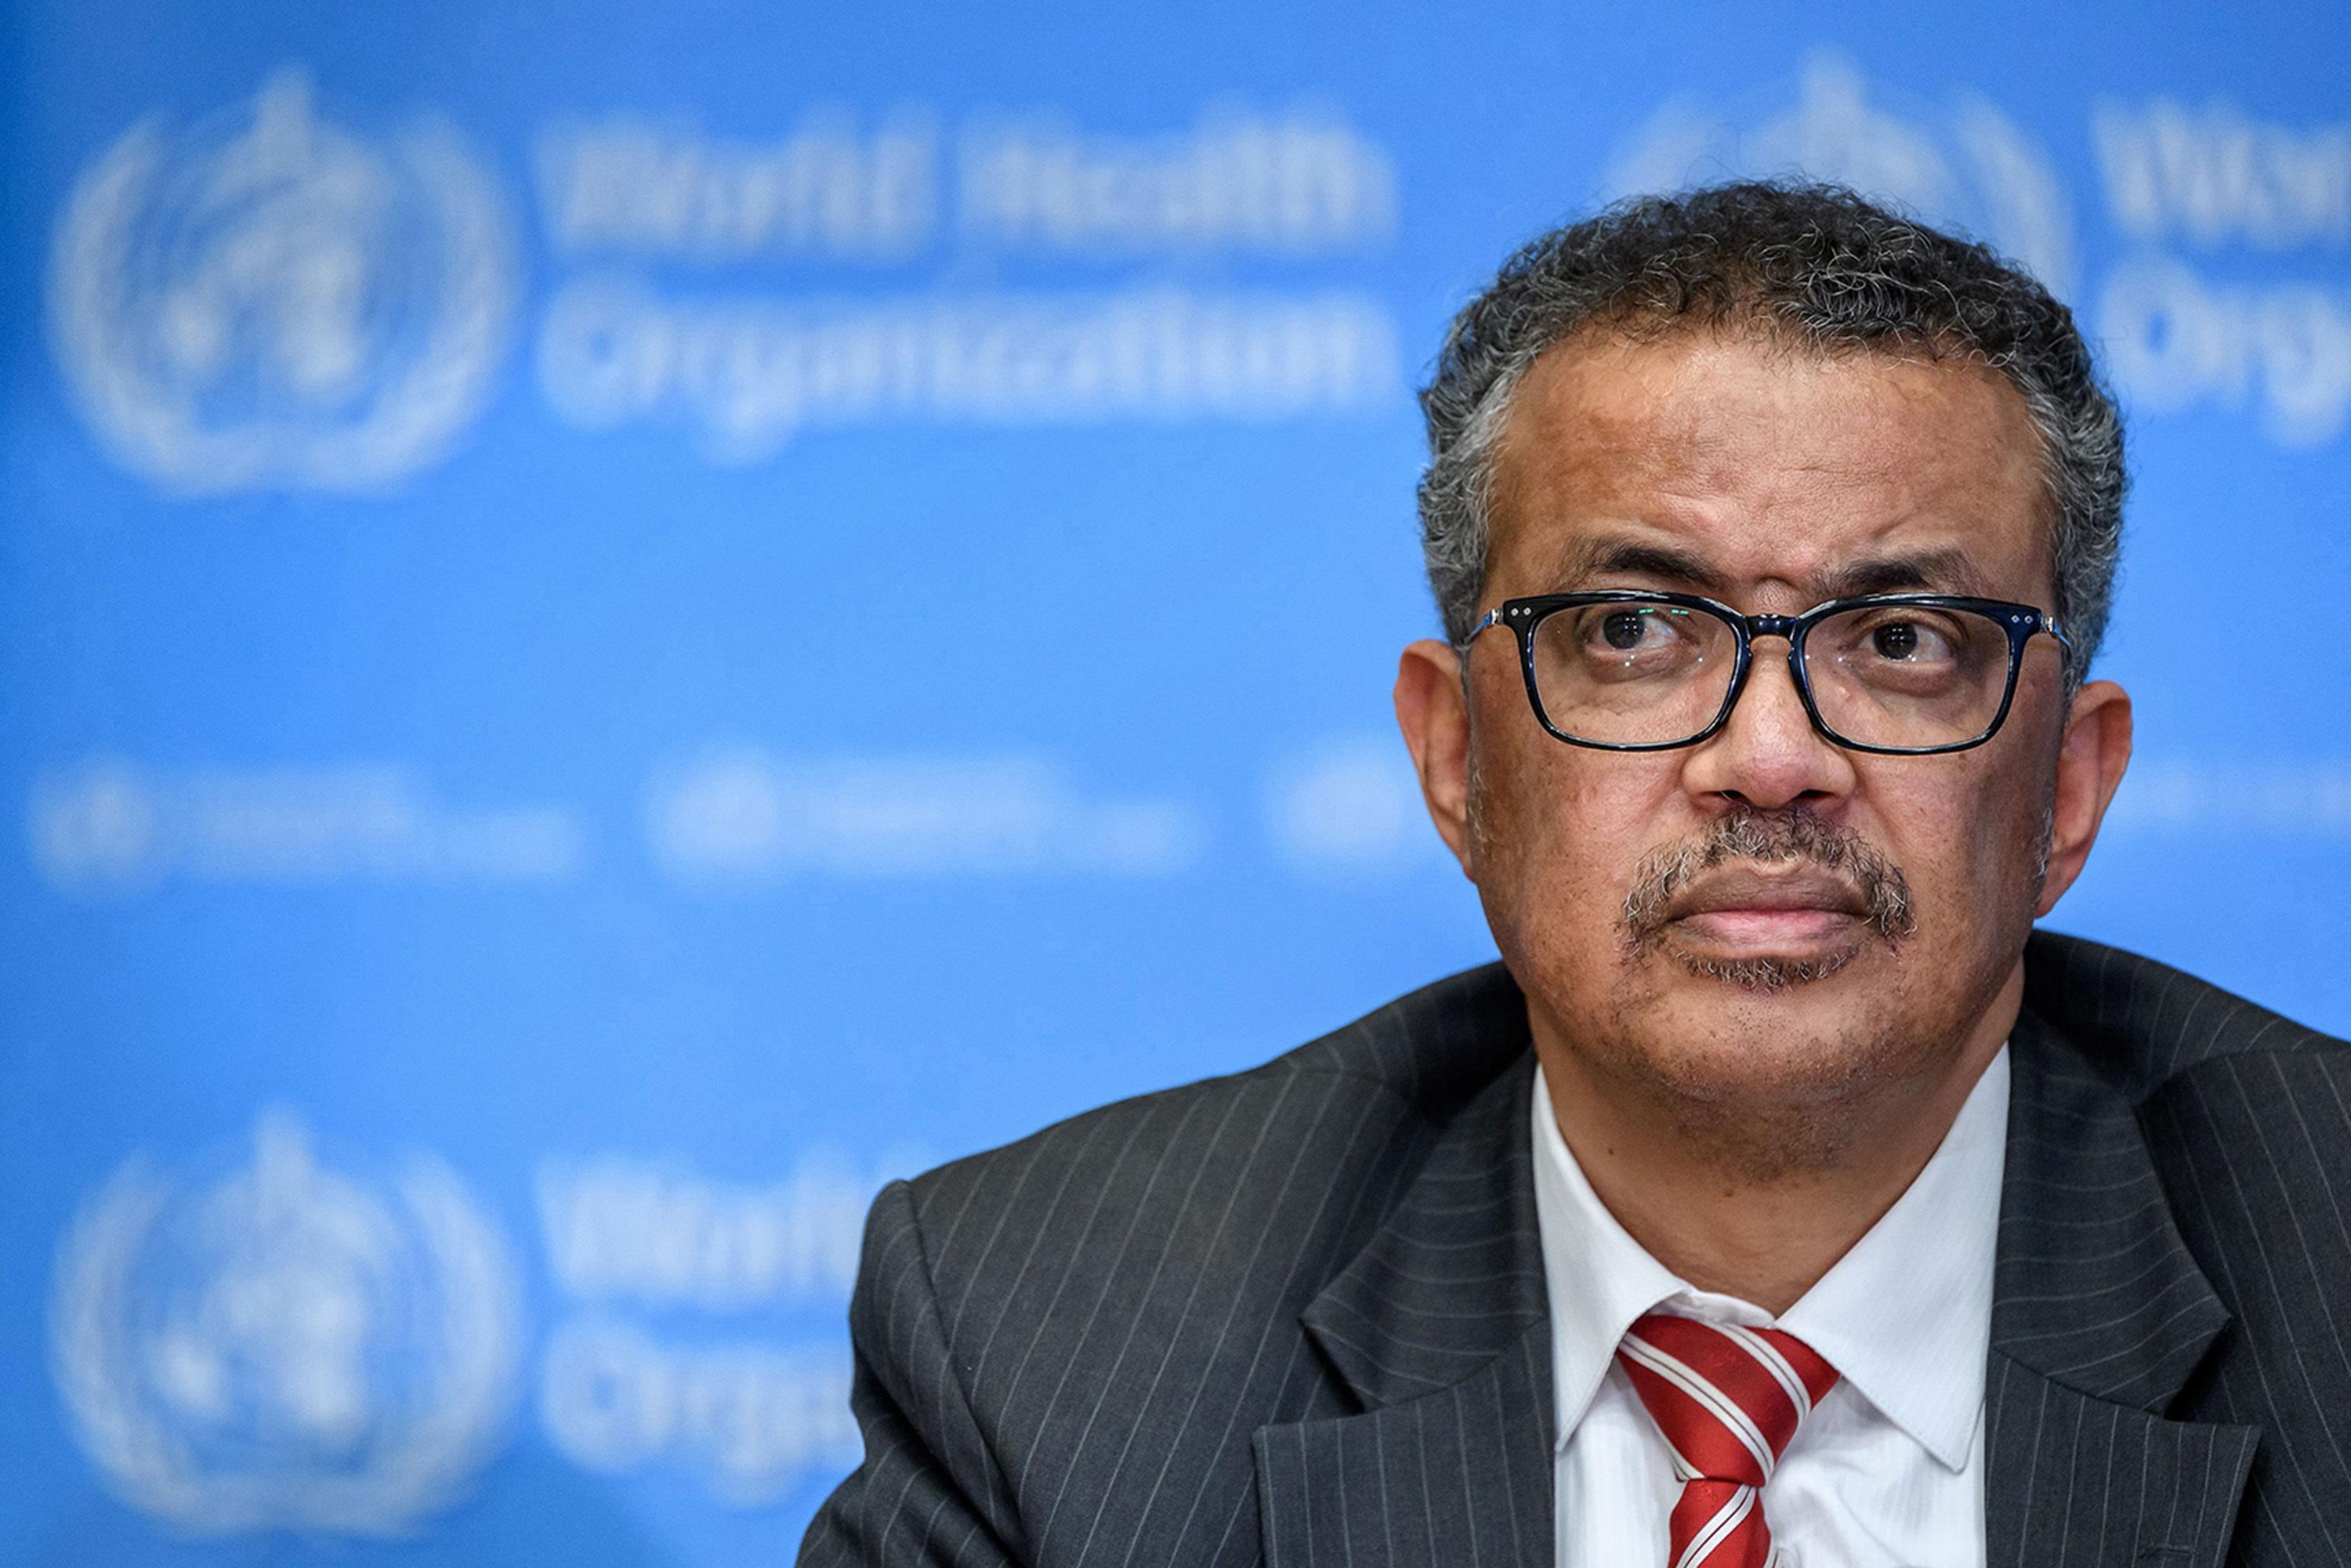 World can win war against coronavirus if leaders do their part, WHO director says